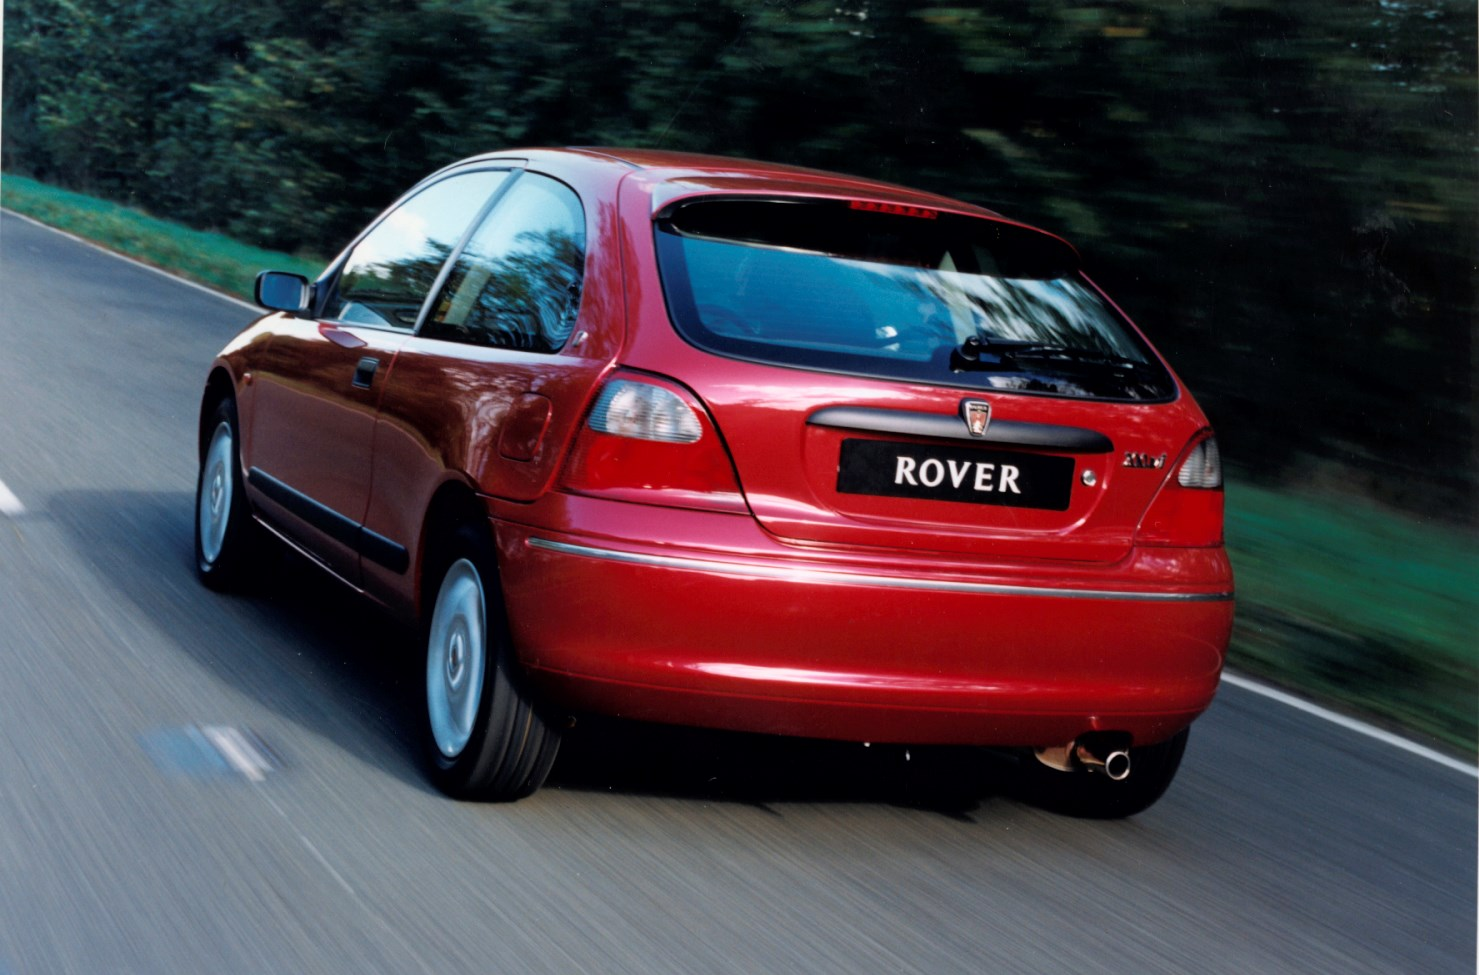 Ford Fiesta Hatchback >> Rover 200 Hatchback Review (1995 - 2000) | Parkers